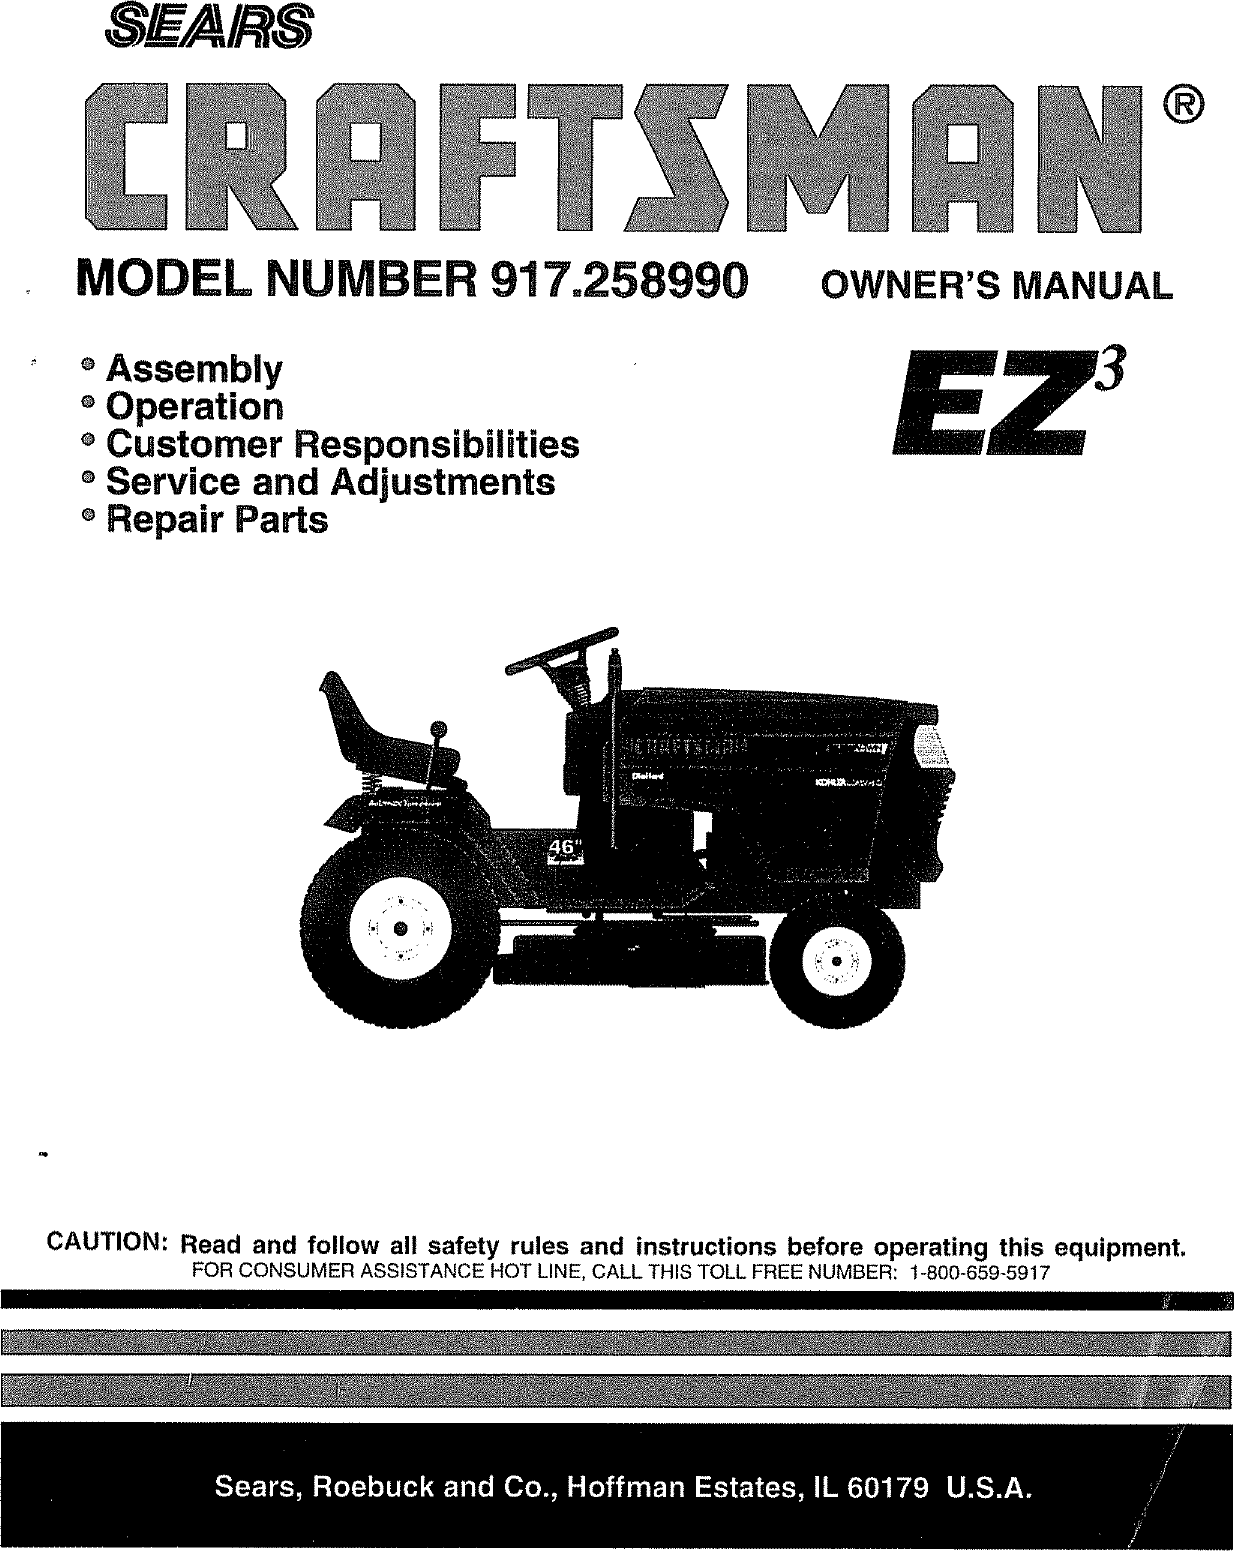 Craftsman 917258990 User Manual Tractor Manuals And Guides L0804240 Circuit Schematic For Fuel Injector Control Applicationscar Wiring